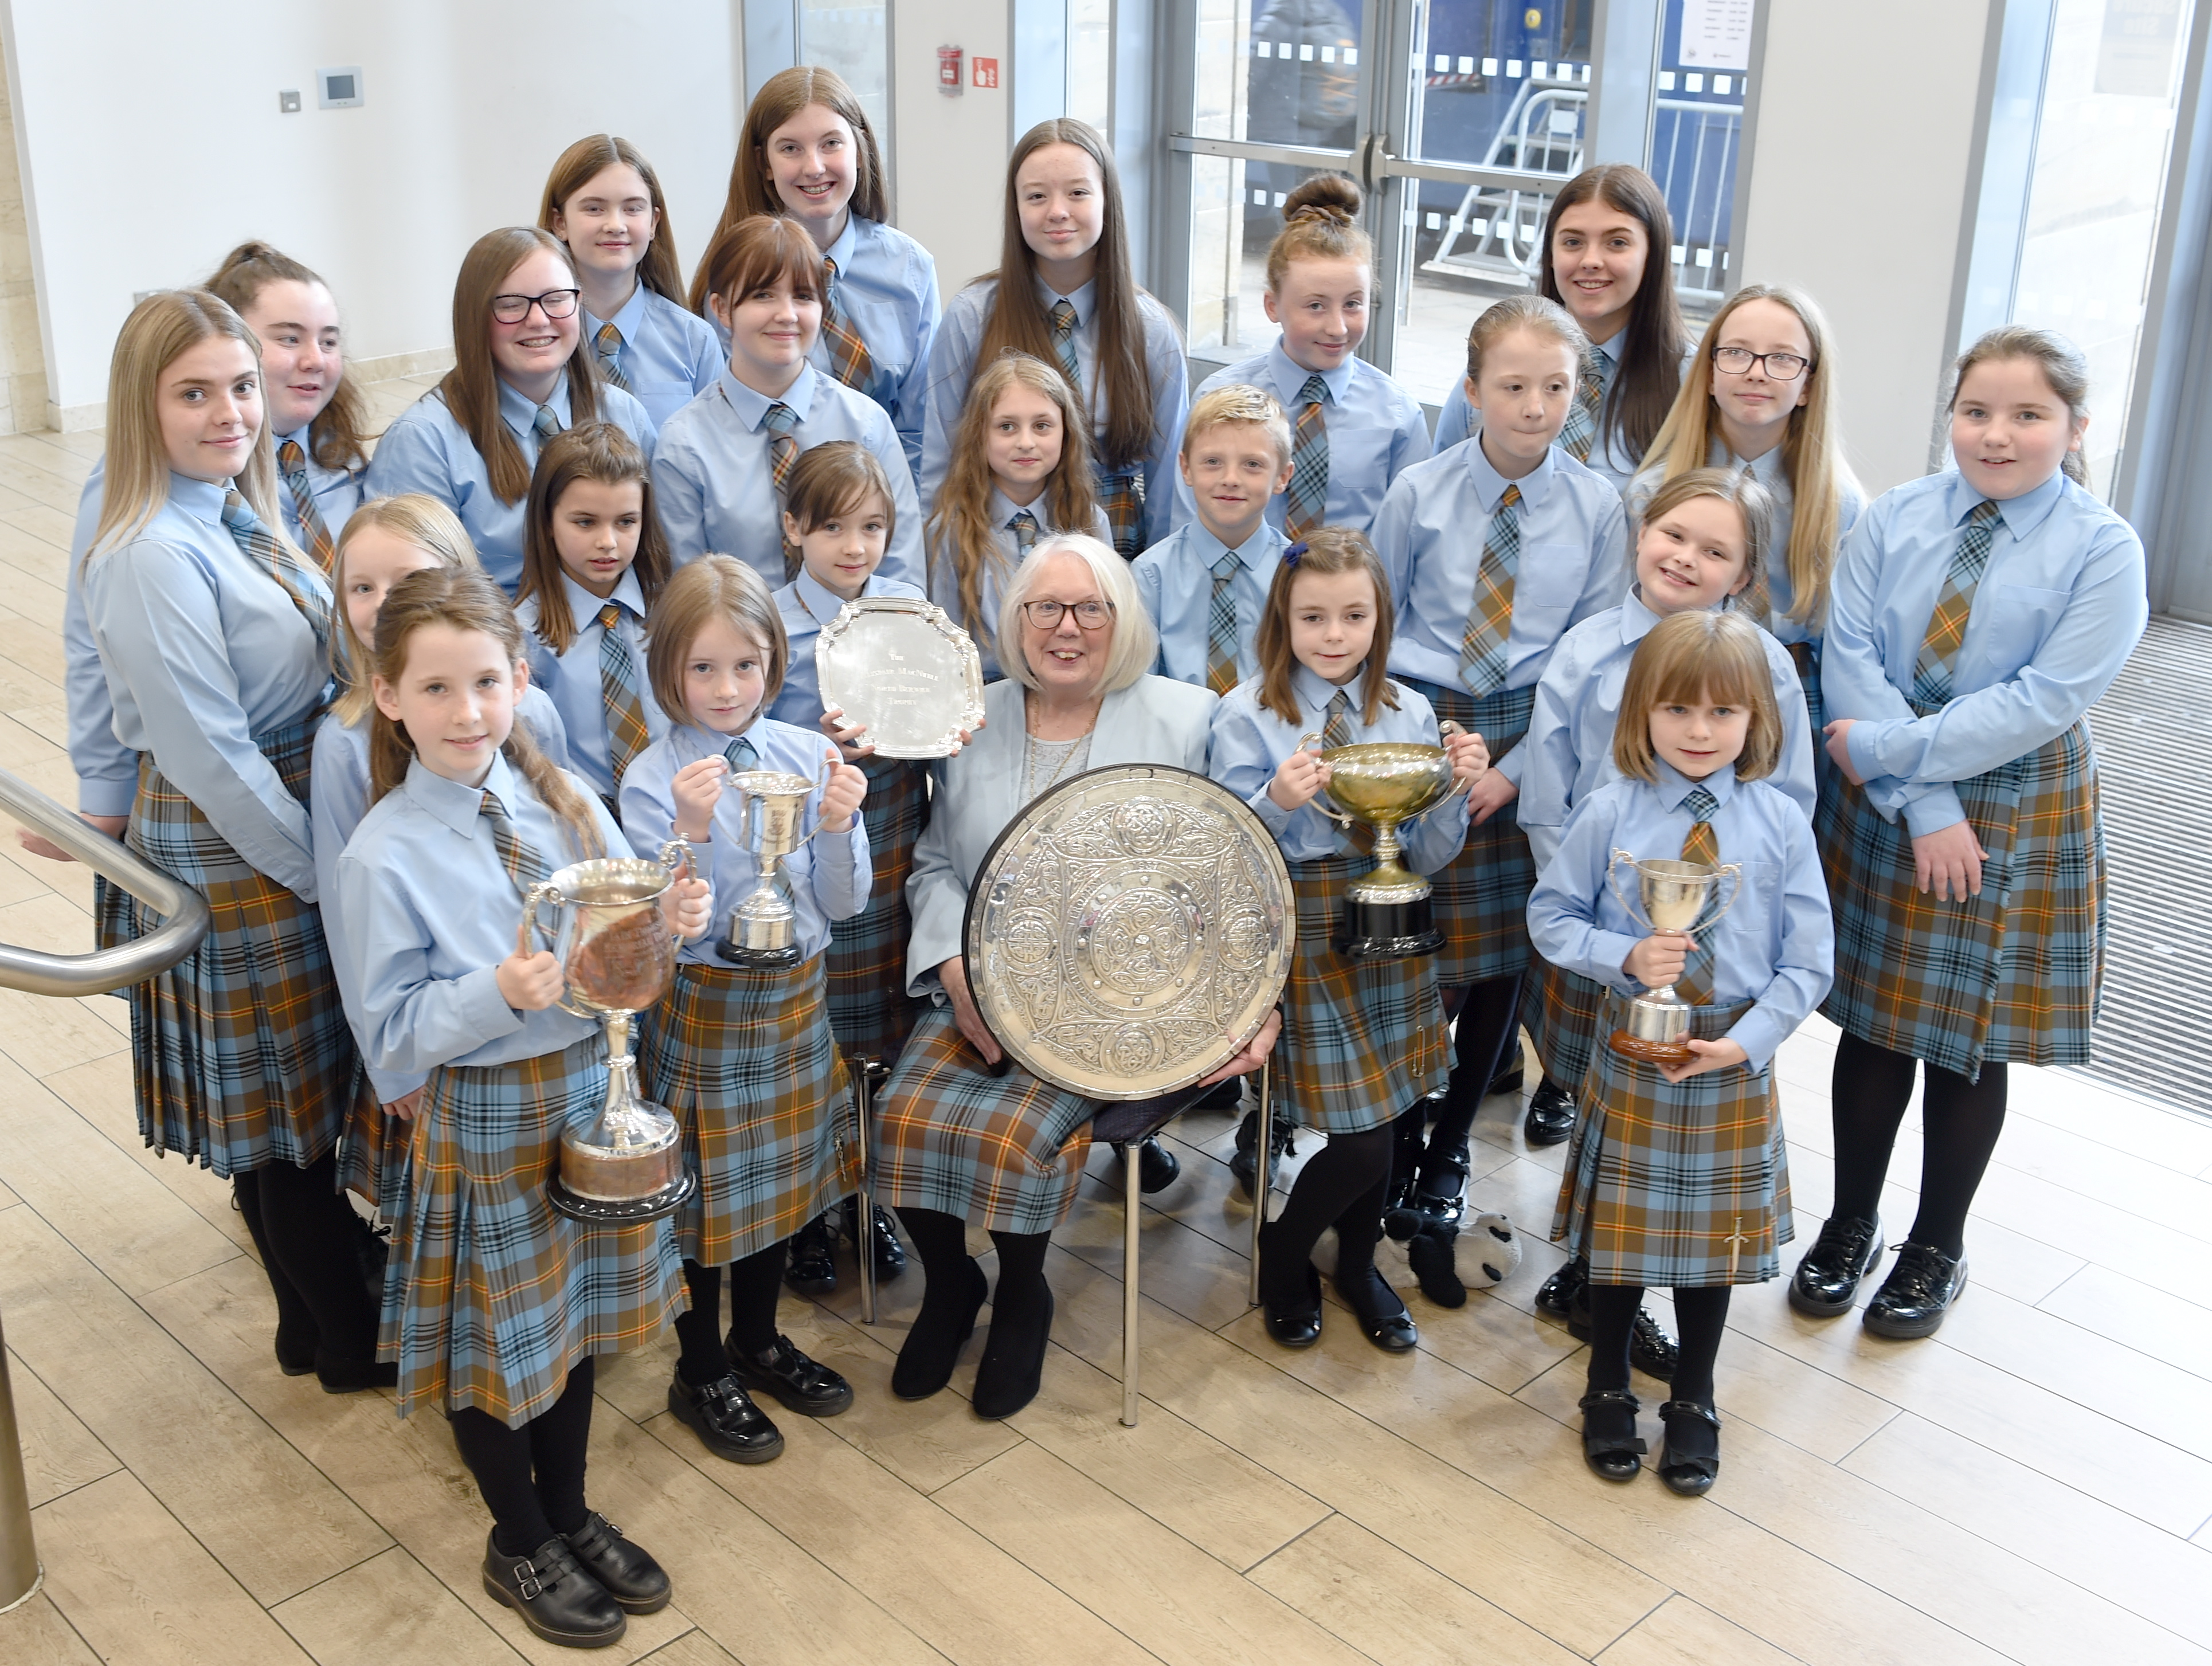 Members of the Falkirk Junior Gaelic School with their trophies and conductor Mary Maclean who herself won the Gold Medal fifty years ago at the Aviemore Mod. Picture by Sandy McCook